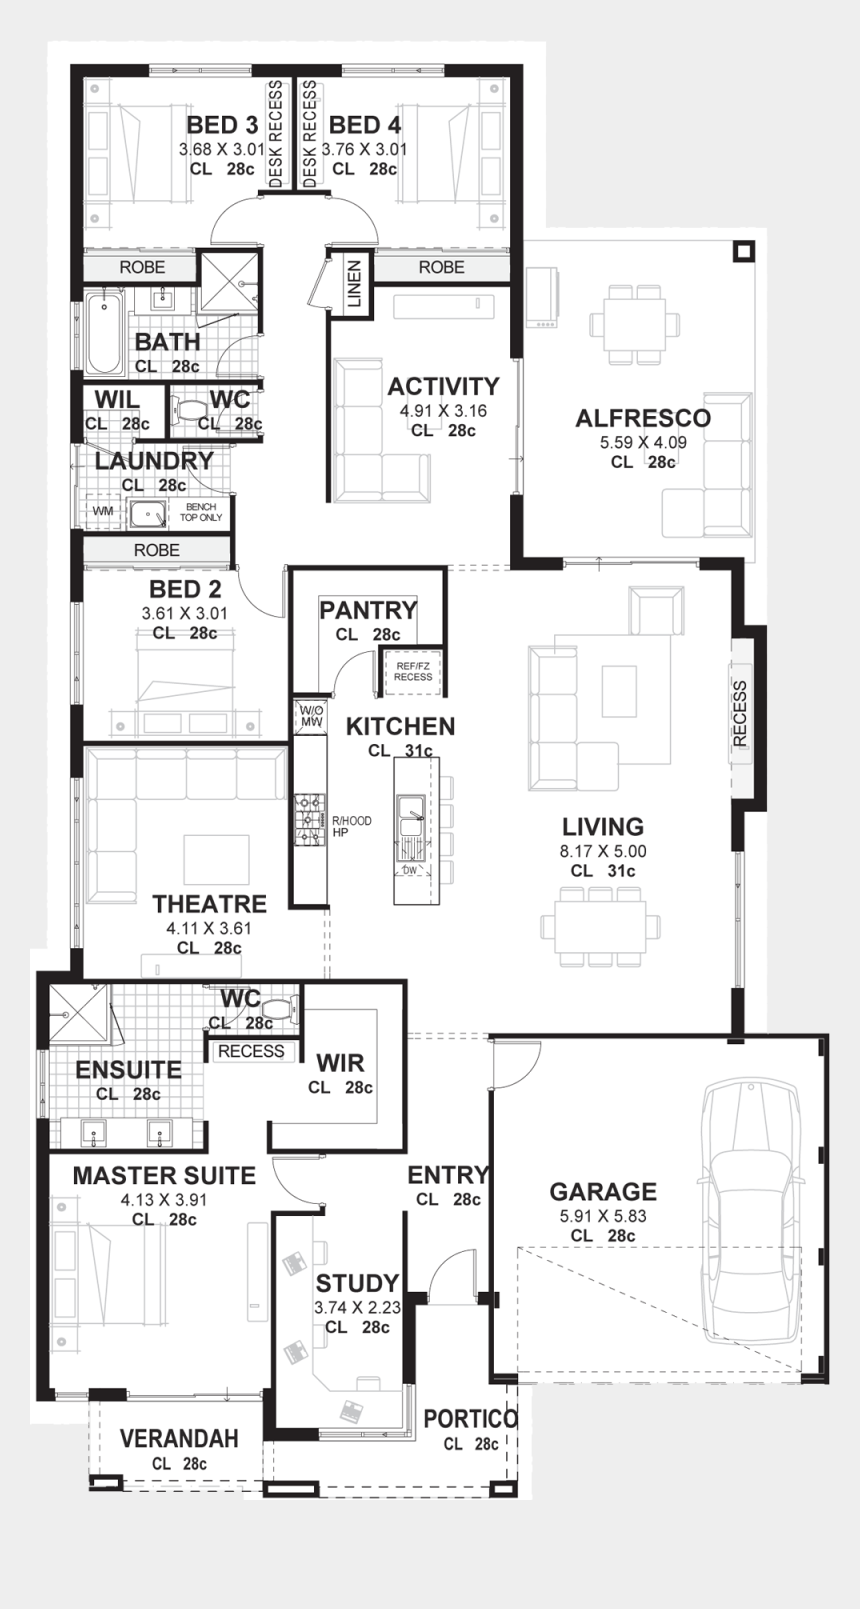 Png Files For Floor Plans - Plan For 9 Bedroom House, Cliparts